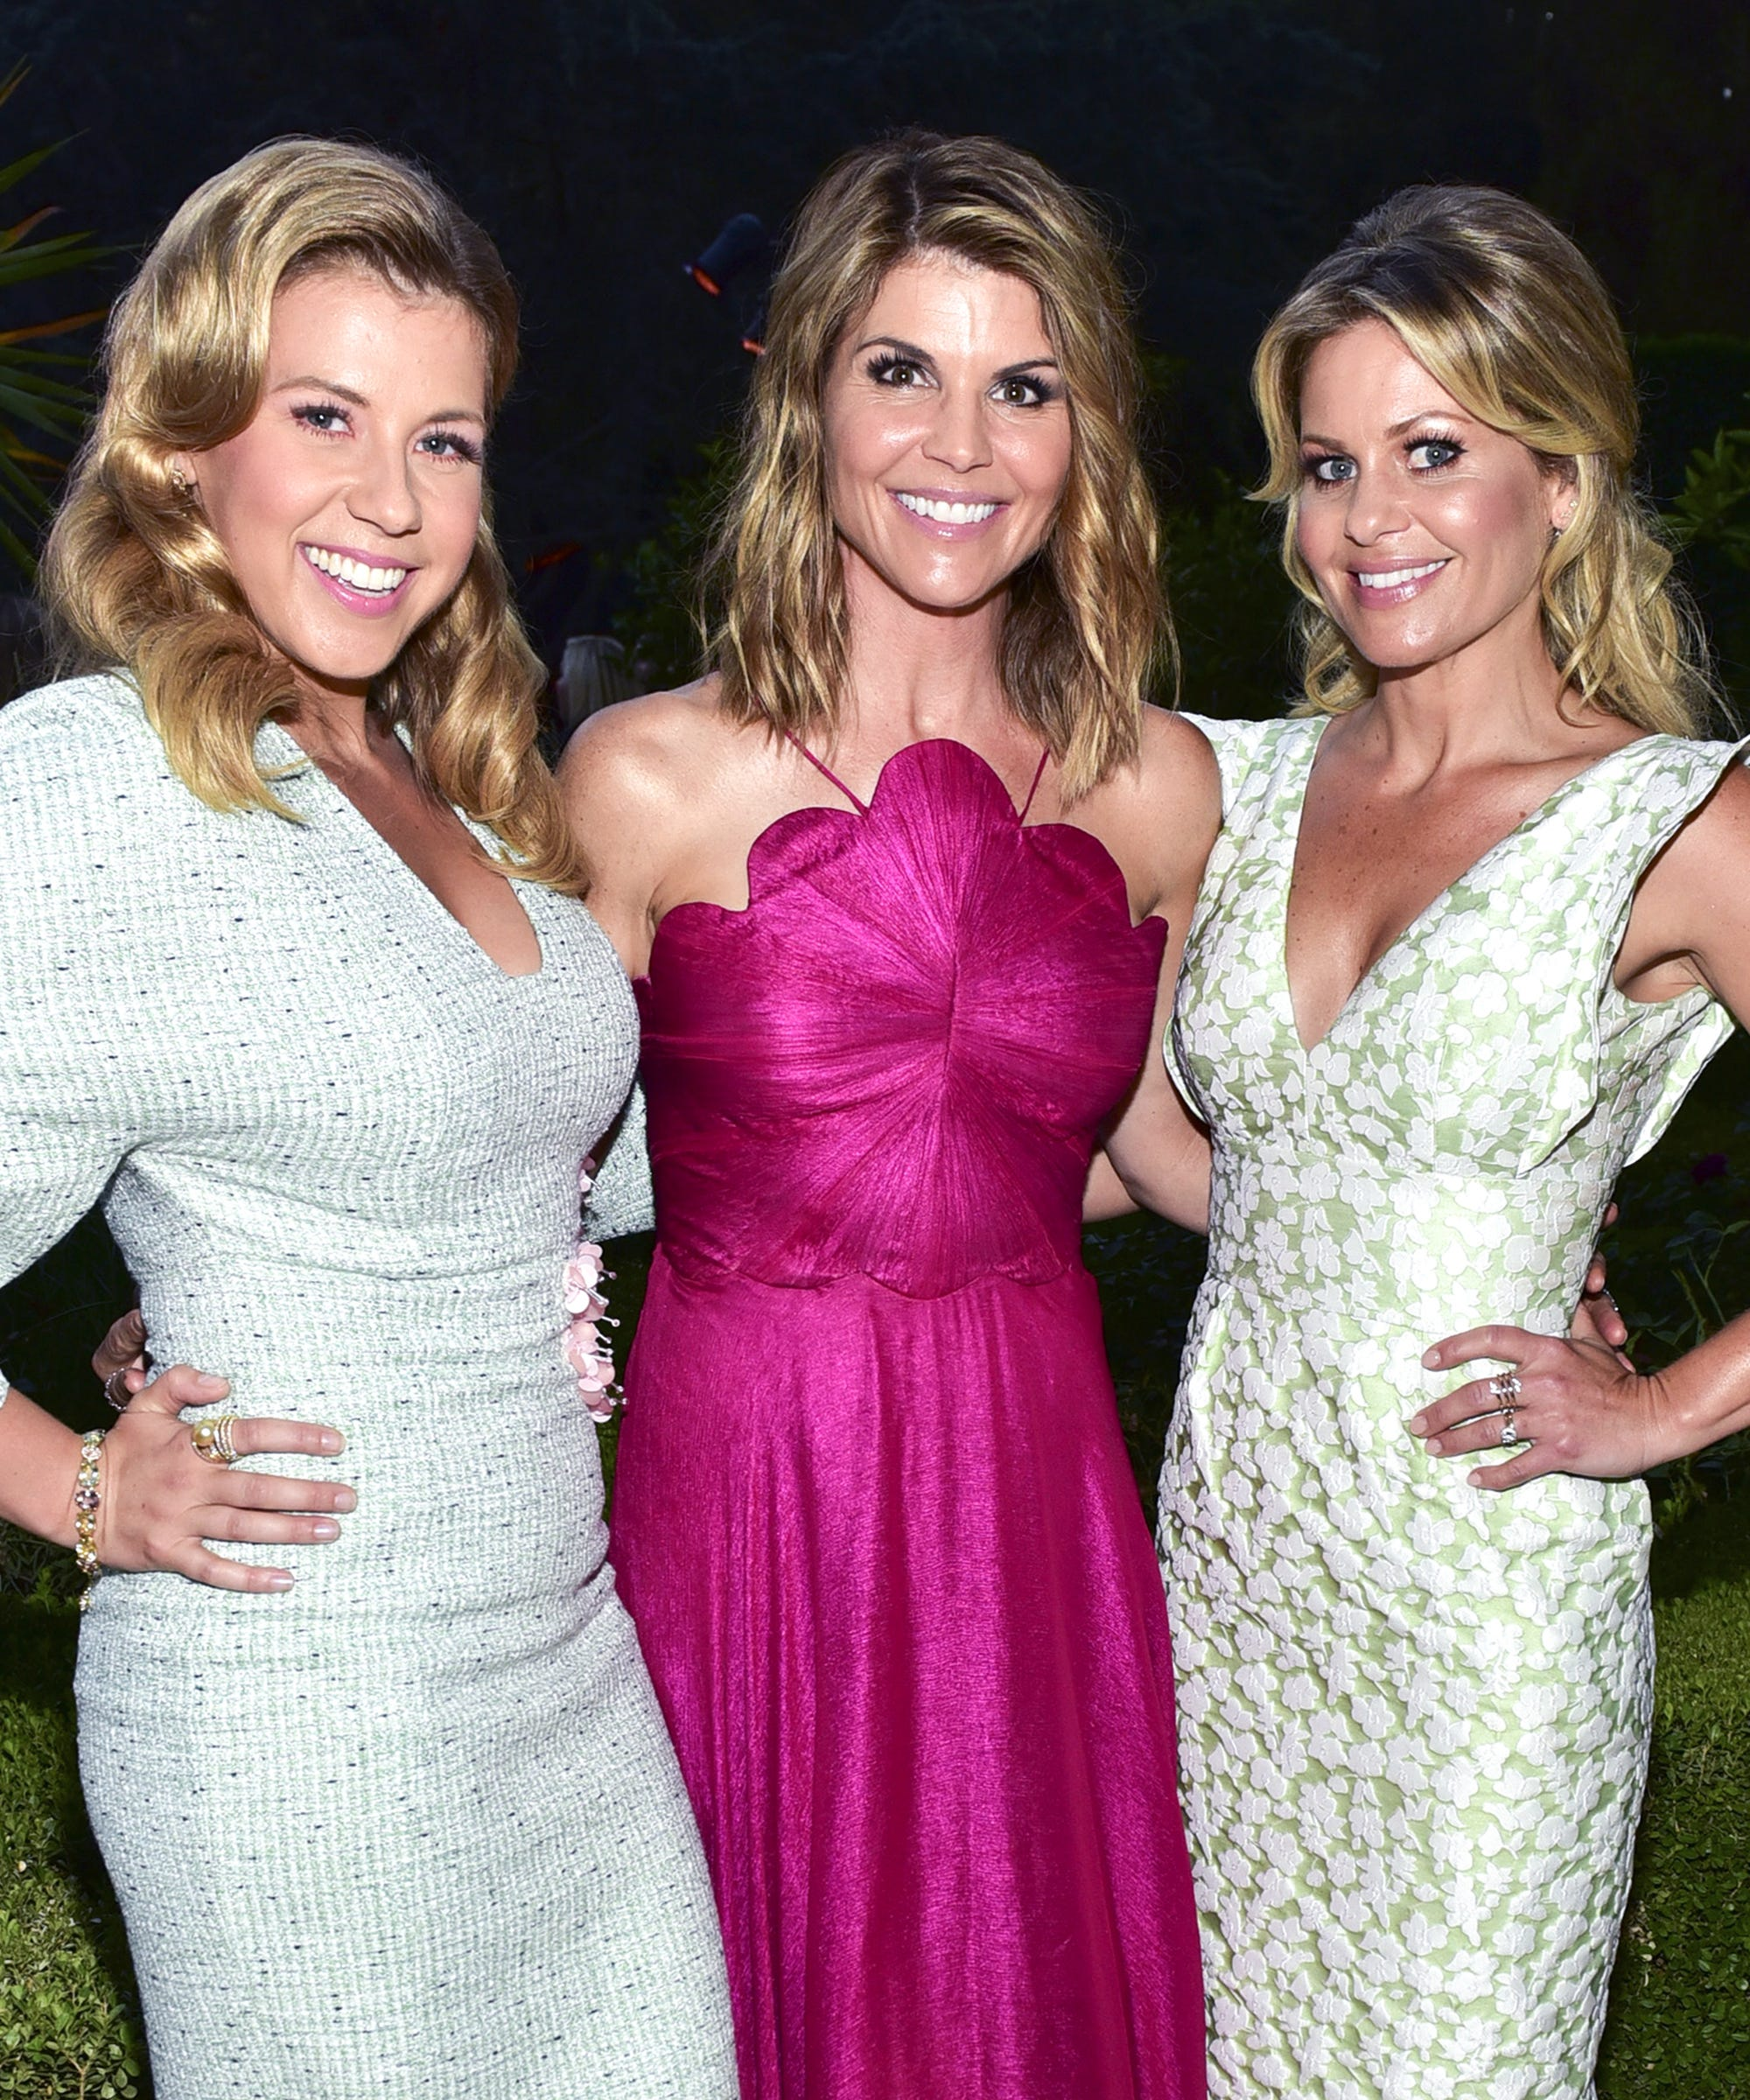 Did The Fuller House Cast Just Low-key Give Their Support To Lori Loughlin?